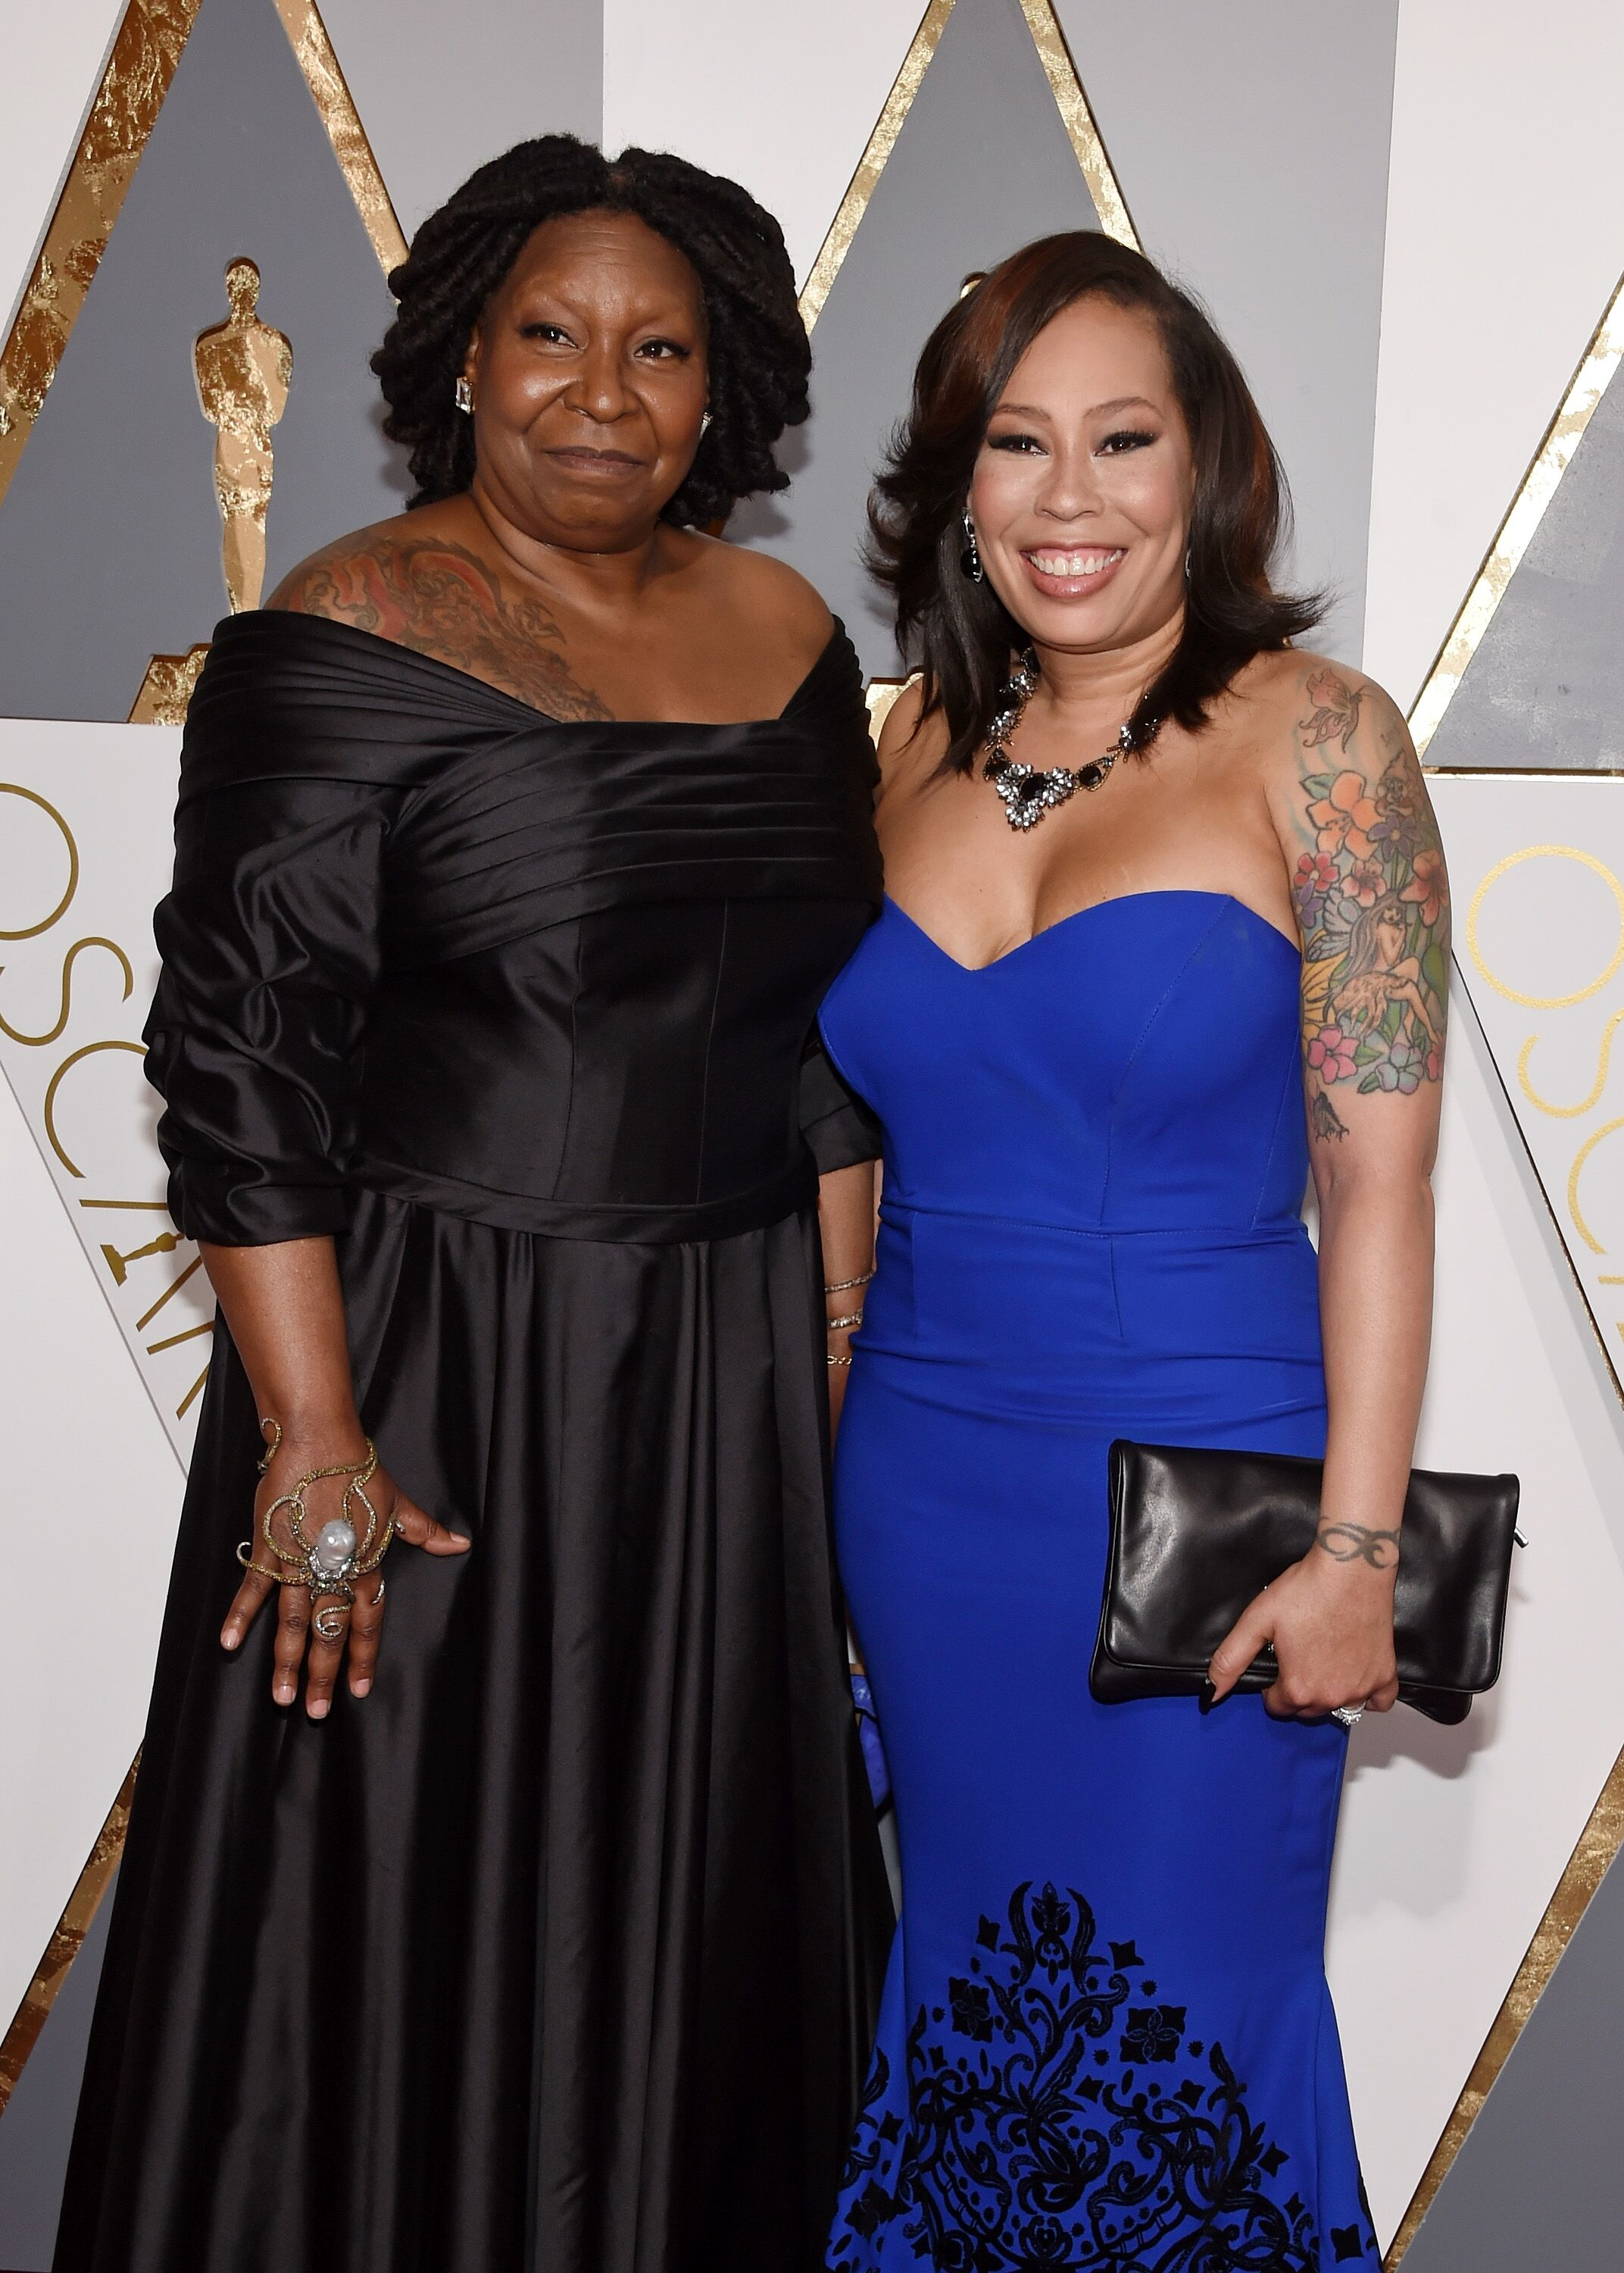 Whoopi Goldberg and Alex Martin attend the 88th Annual Academy Awards. | Source: Getty Images